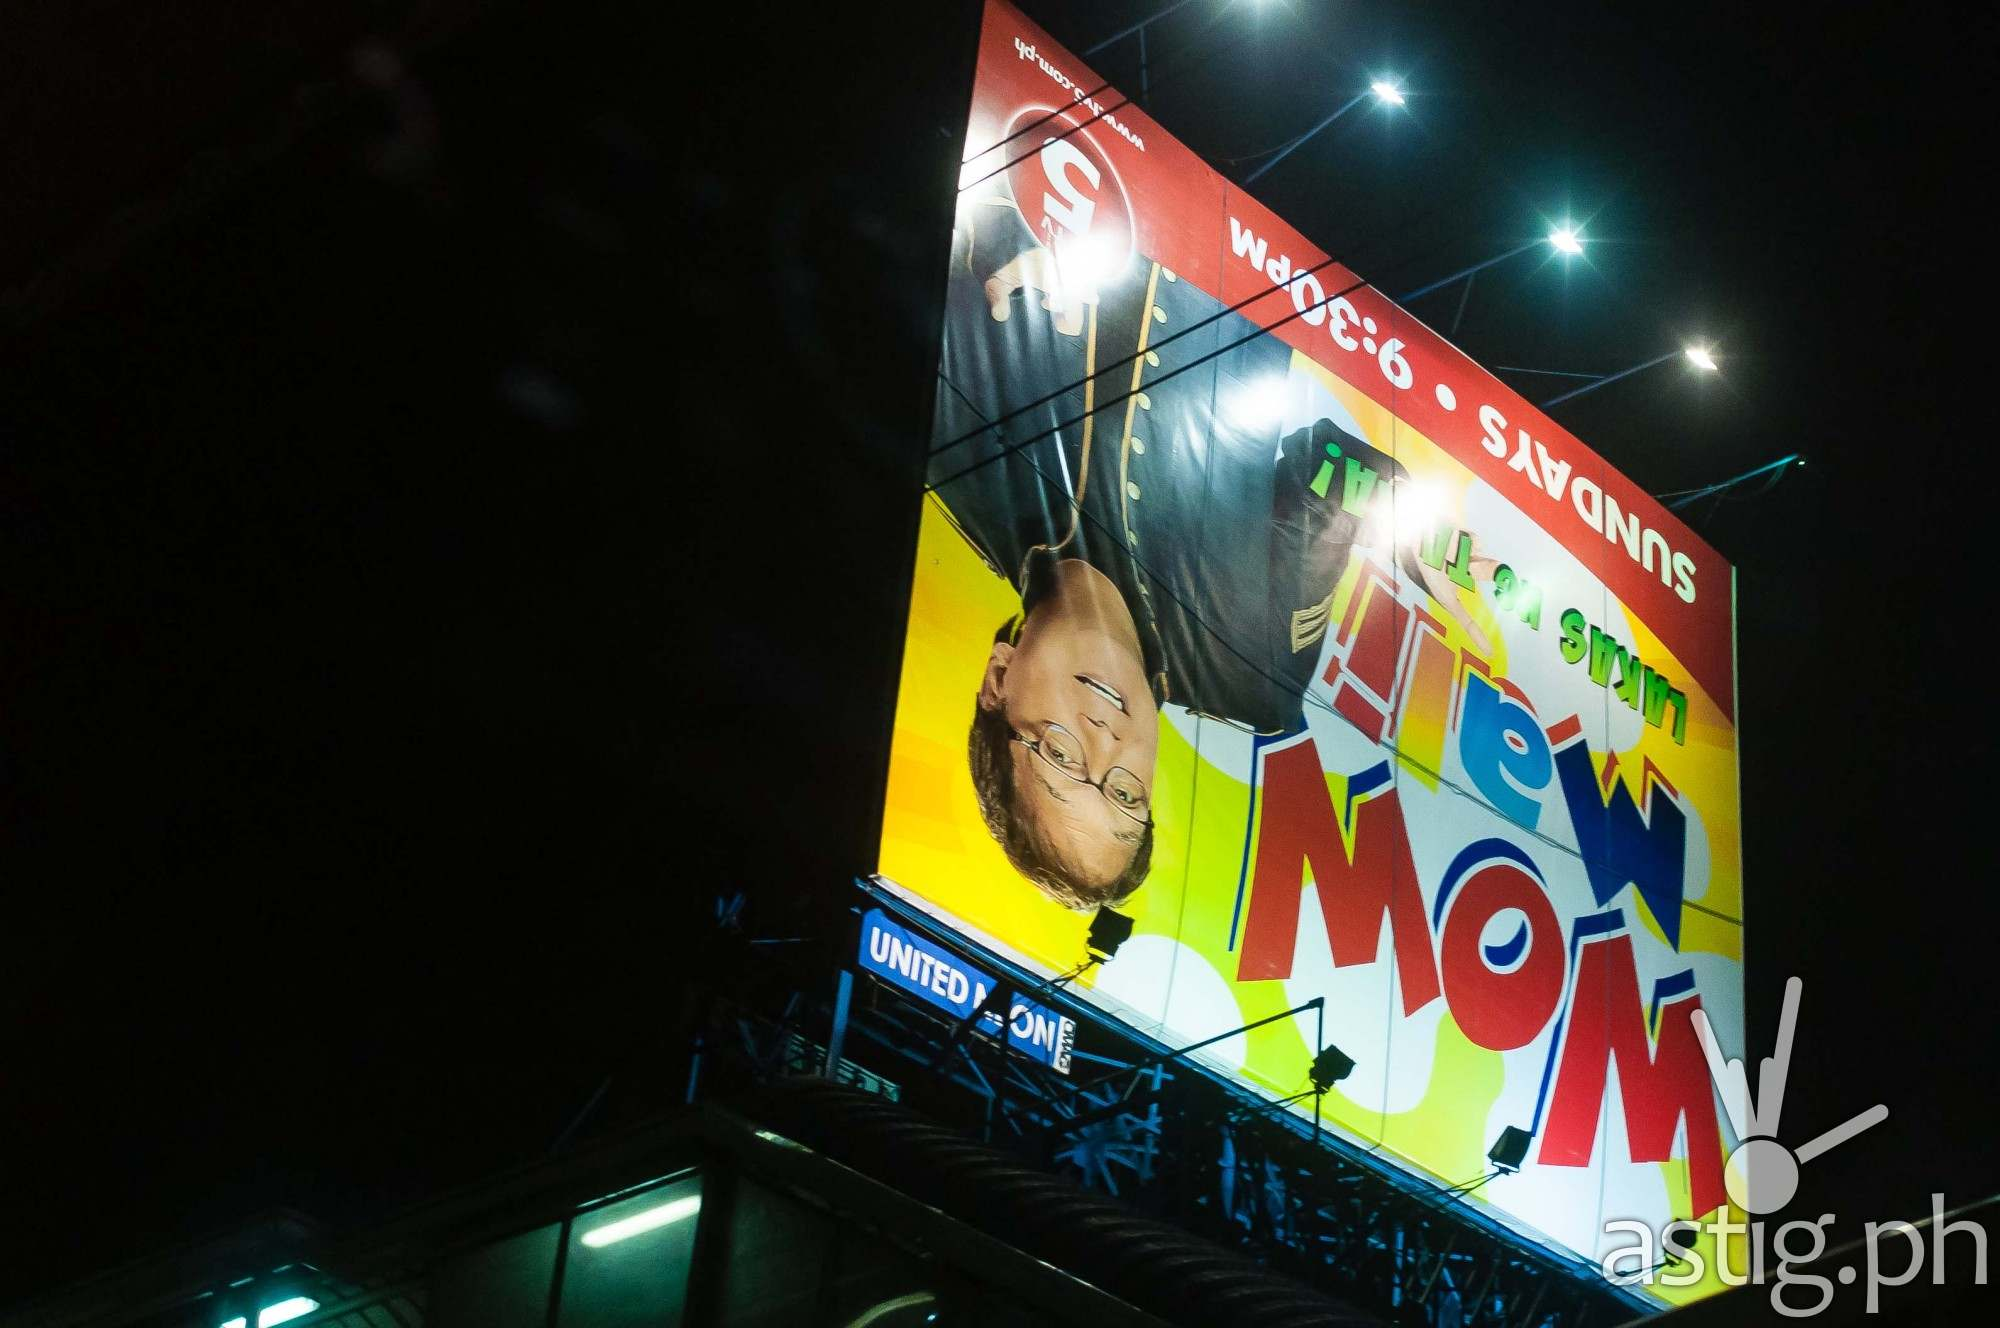 Wow Mali billboard EDSA Balintawak featuring Joey de Leon